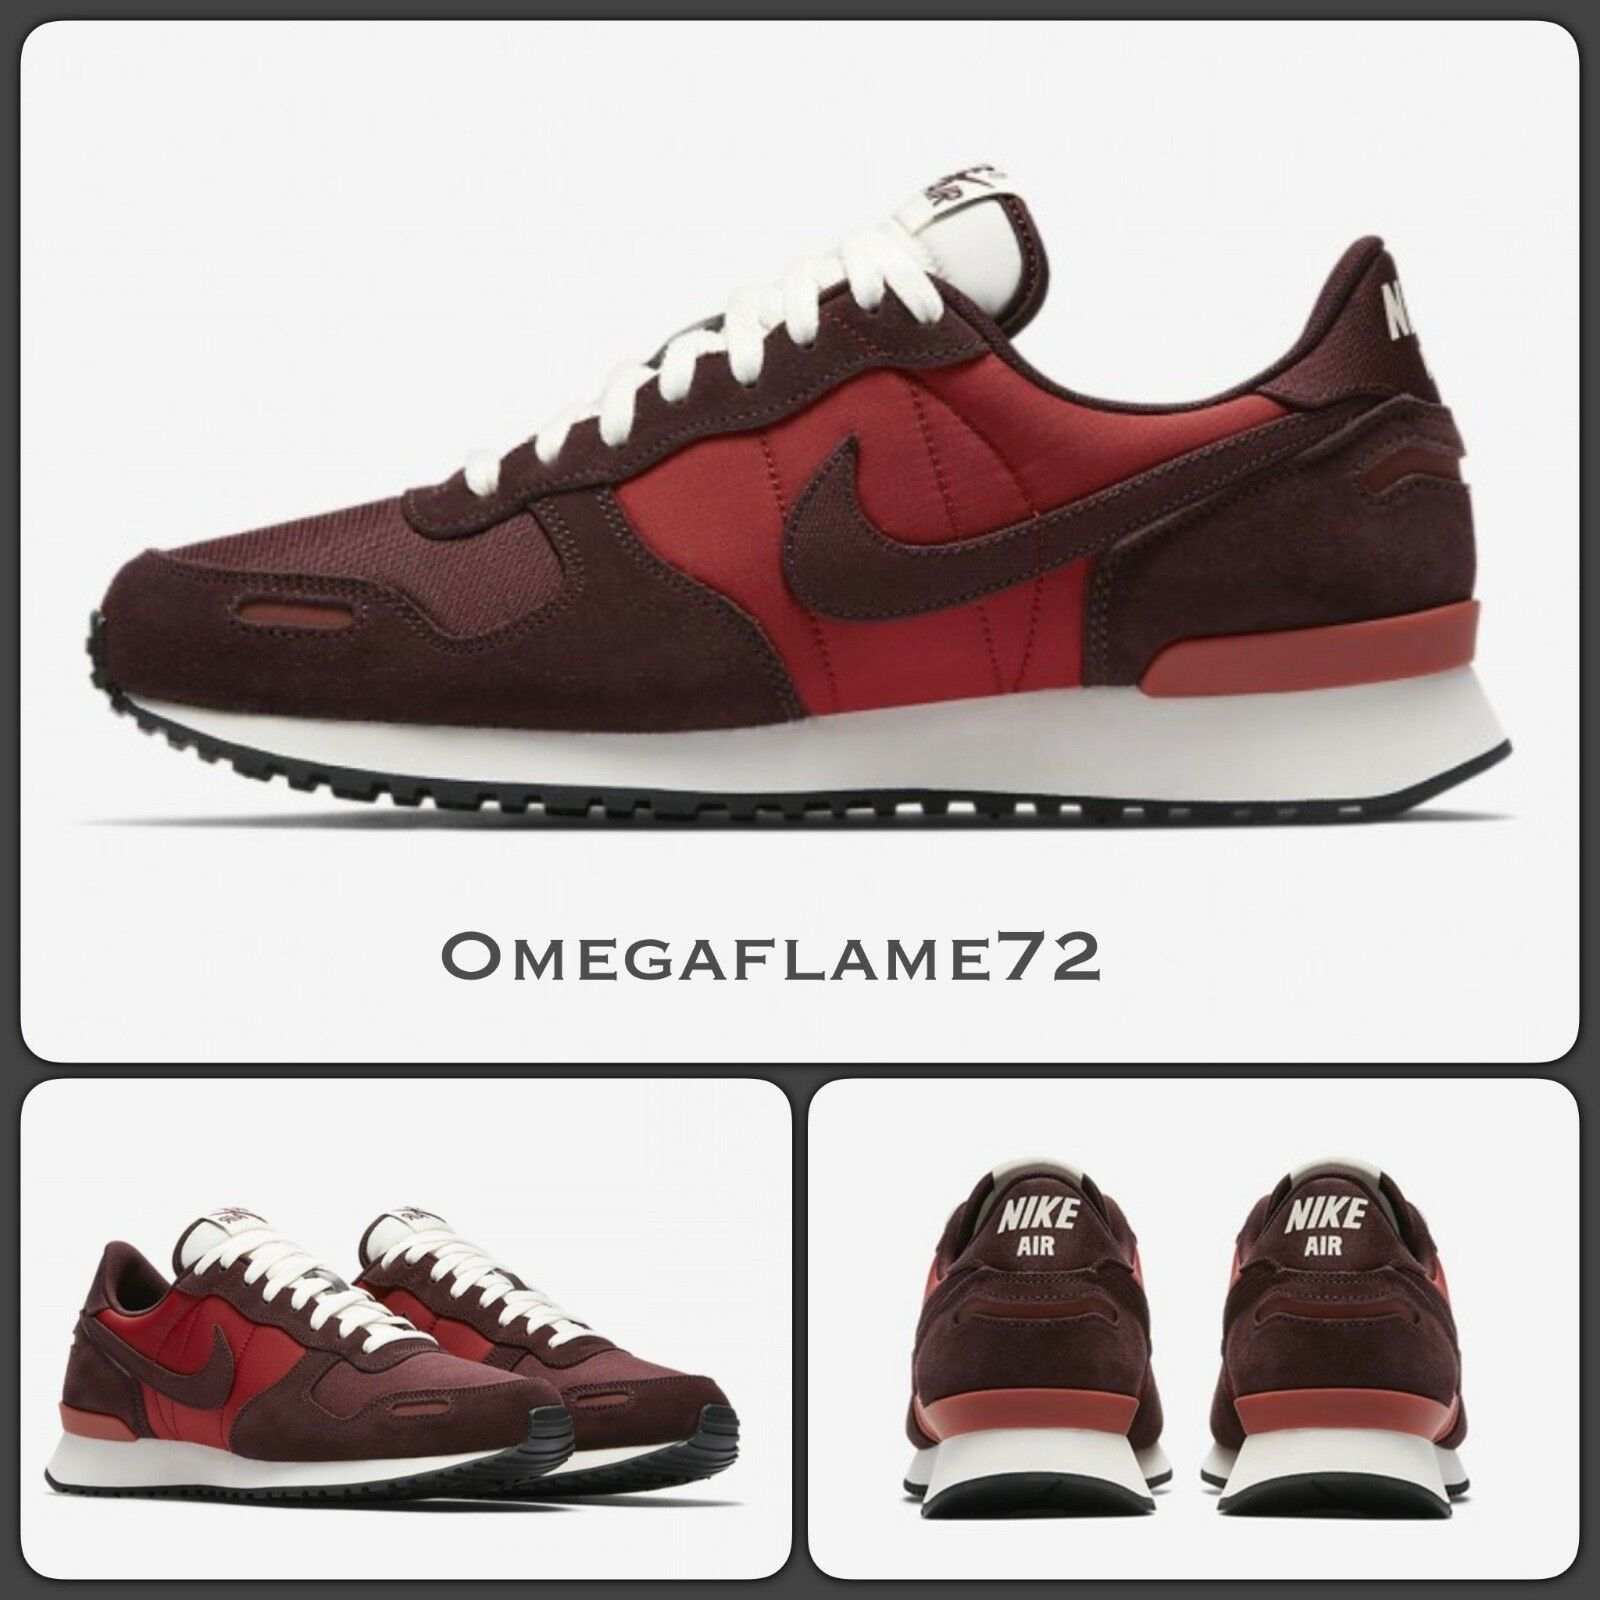 Nike Air Vortex, UK 8.5, EU 43, US 9.5, 903896-602, Mars stone, Pegasus 83,